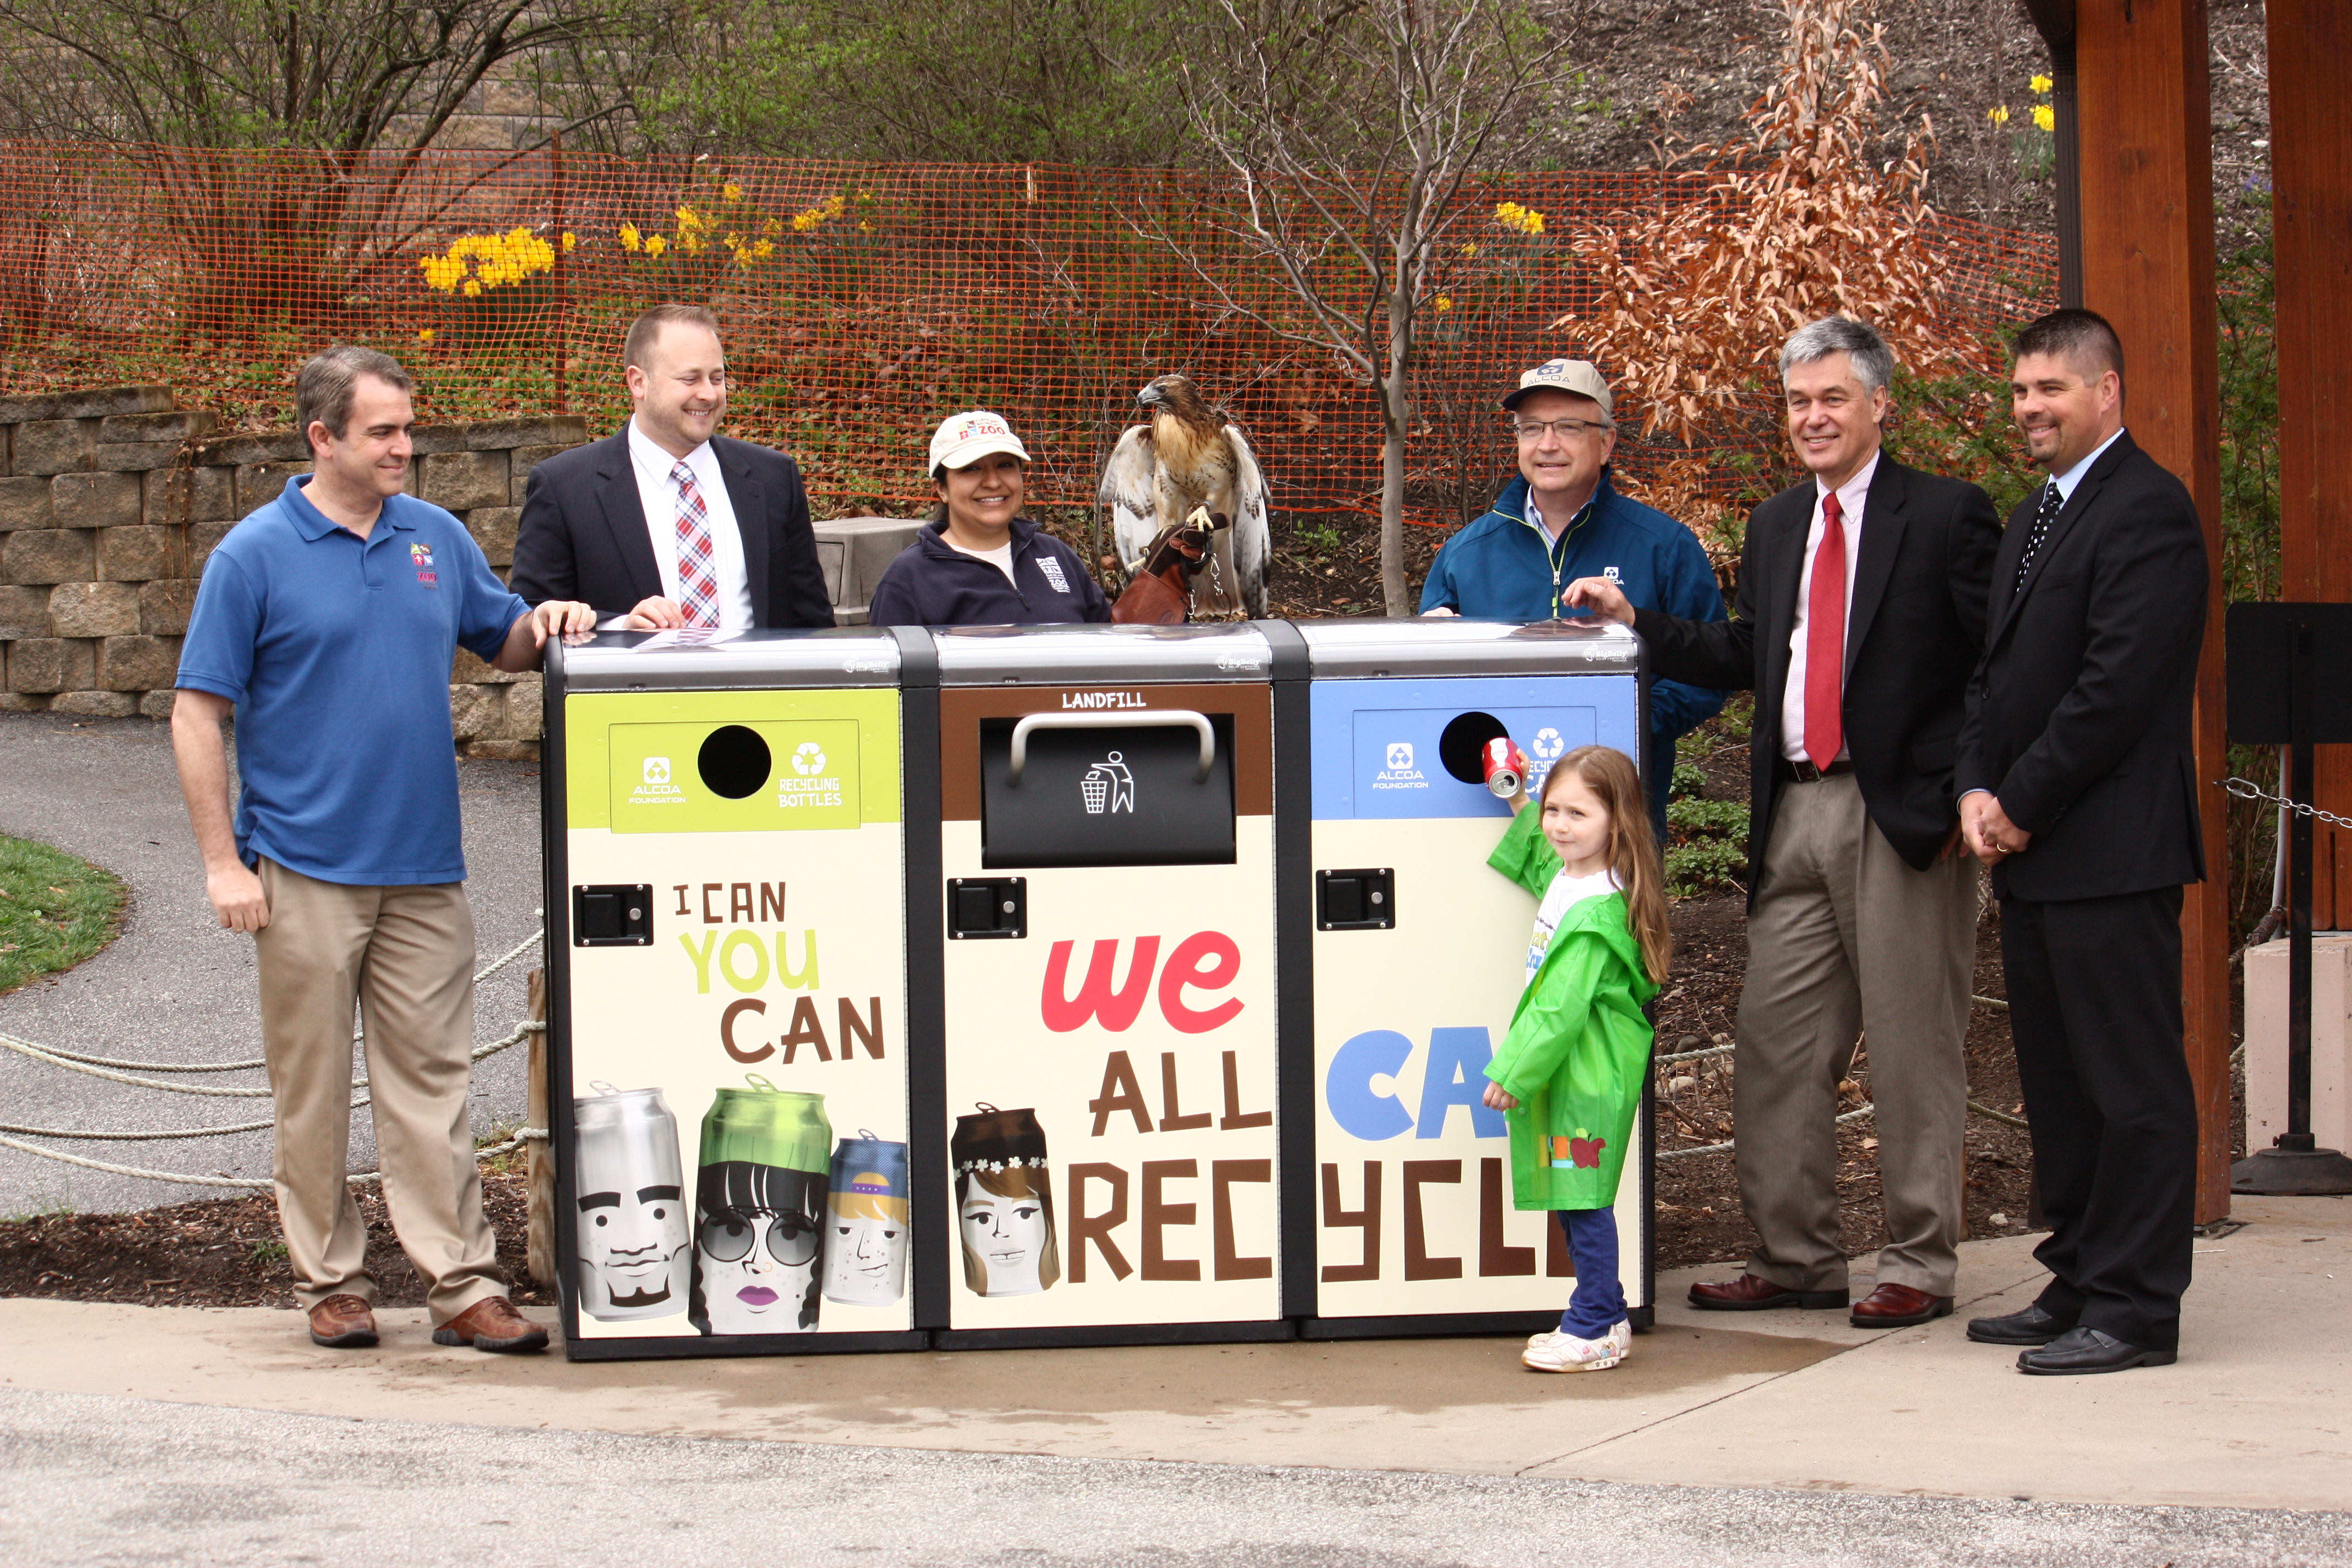 CLEVELAND METROPARKS ZOO DEBUTS HIGH TECH SOLAR RECYCLING AND TRASH COMPACTORS DONATED BY ALCOA FOUNDATION